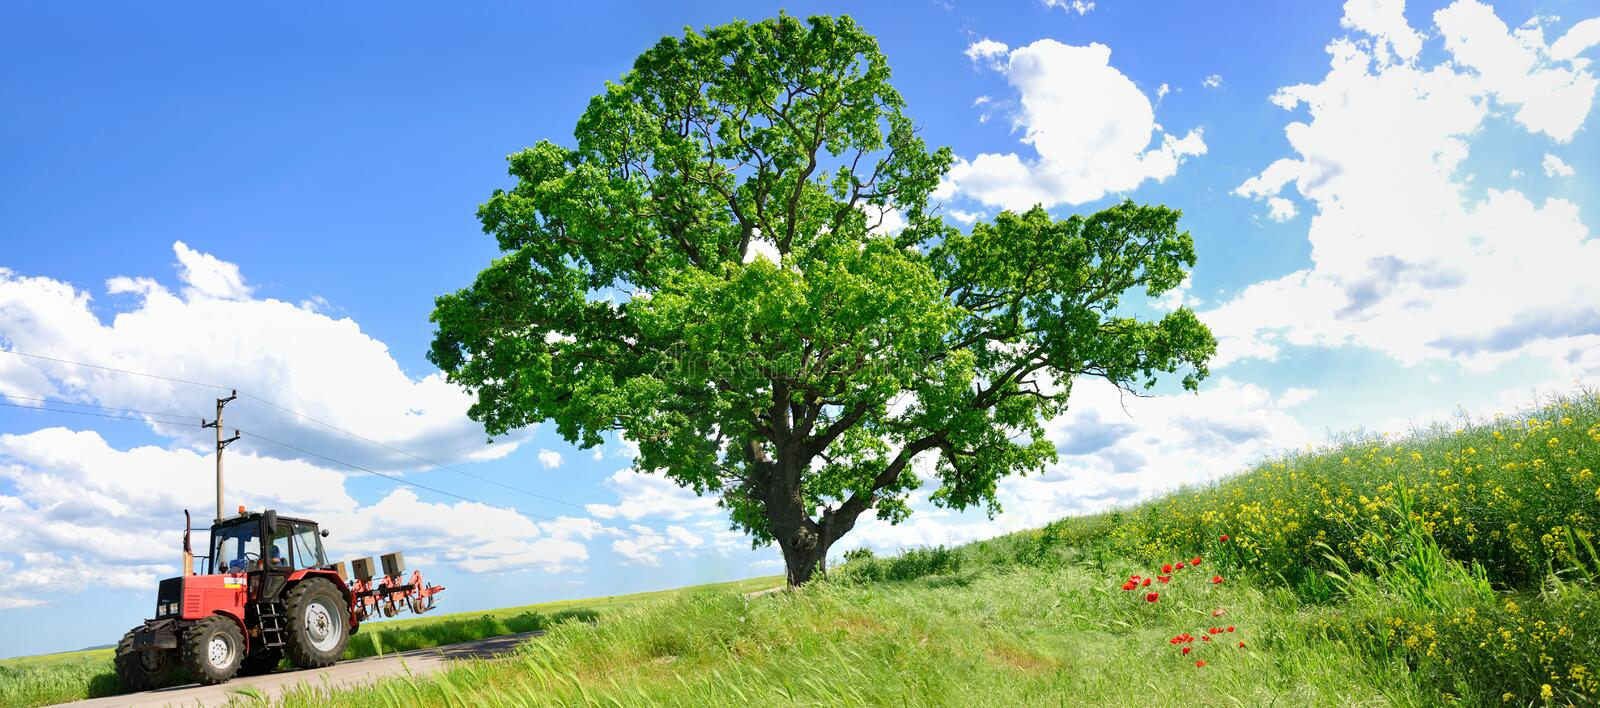 Download Farming Tractor And Big Green Tree Stock Photo - Image: 15257206